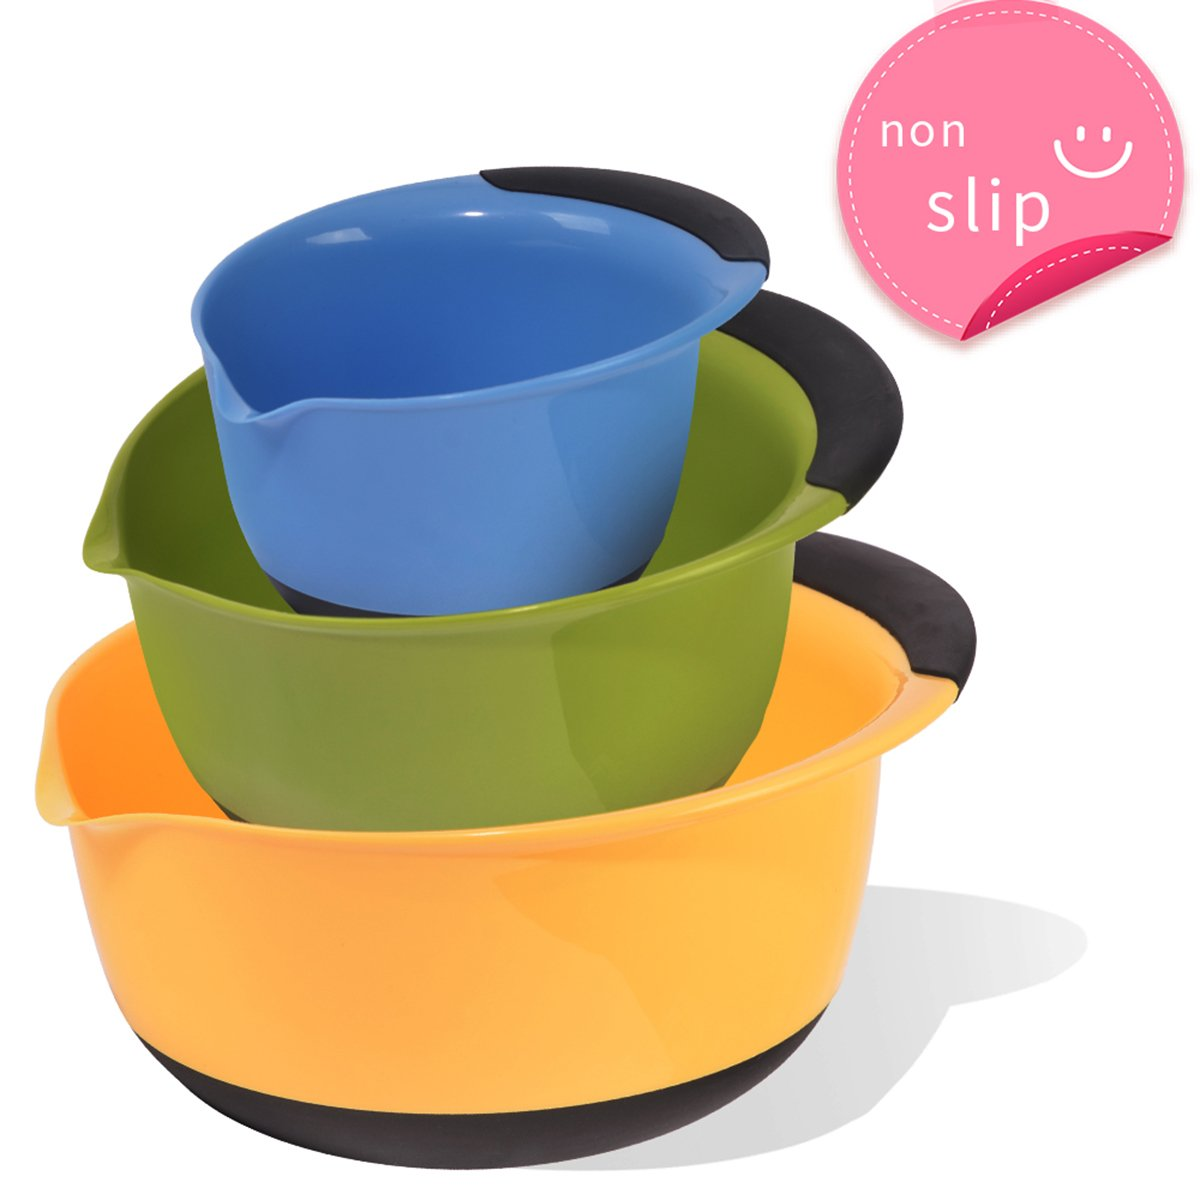 SZUAH Plastic Mixing Bowl Set of 3, Nesting Mixing Bowls with Pouring Spout, Non-Slip Rubber Handle & Bottom, for Baking & Salad Mixing, BPA Free.